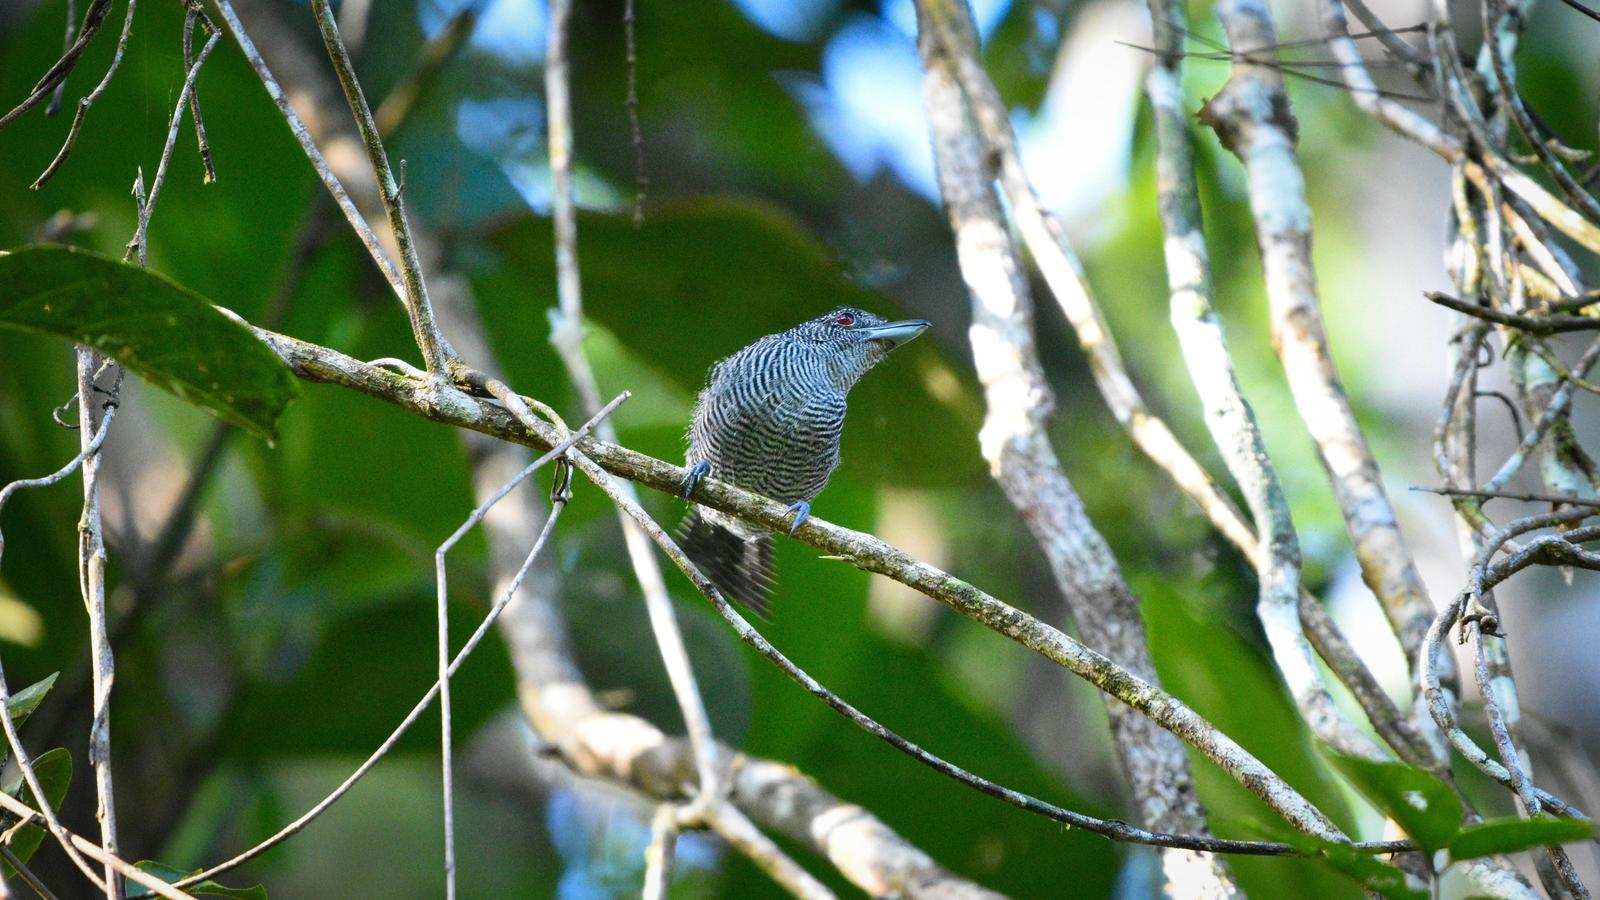 Fasciated Antshrike Photo by Julio Delgado